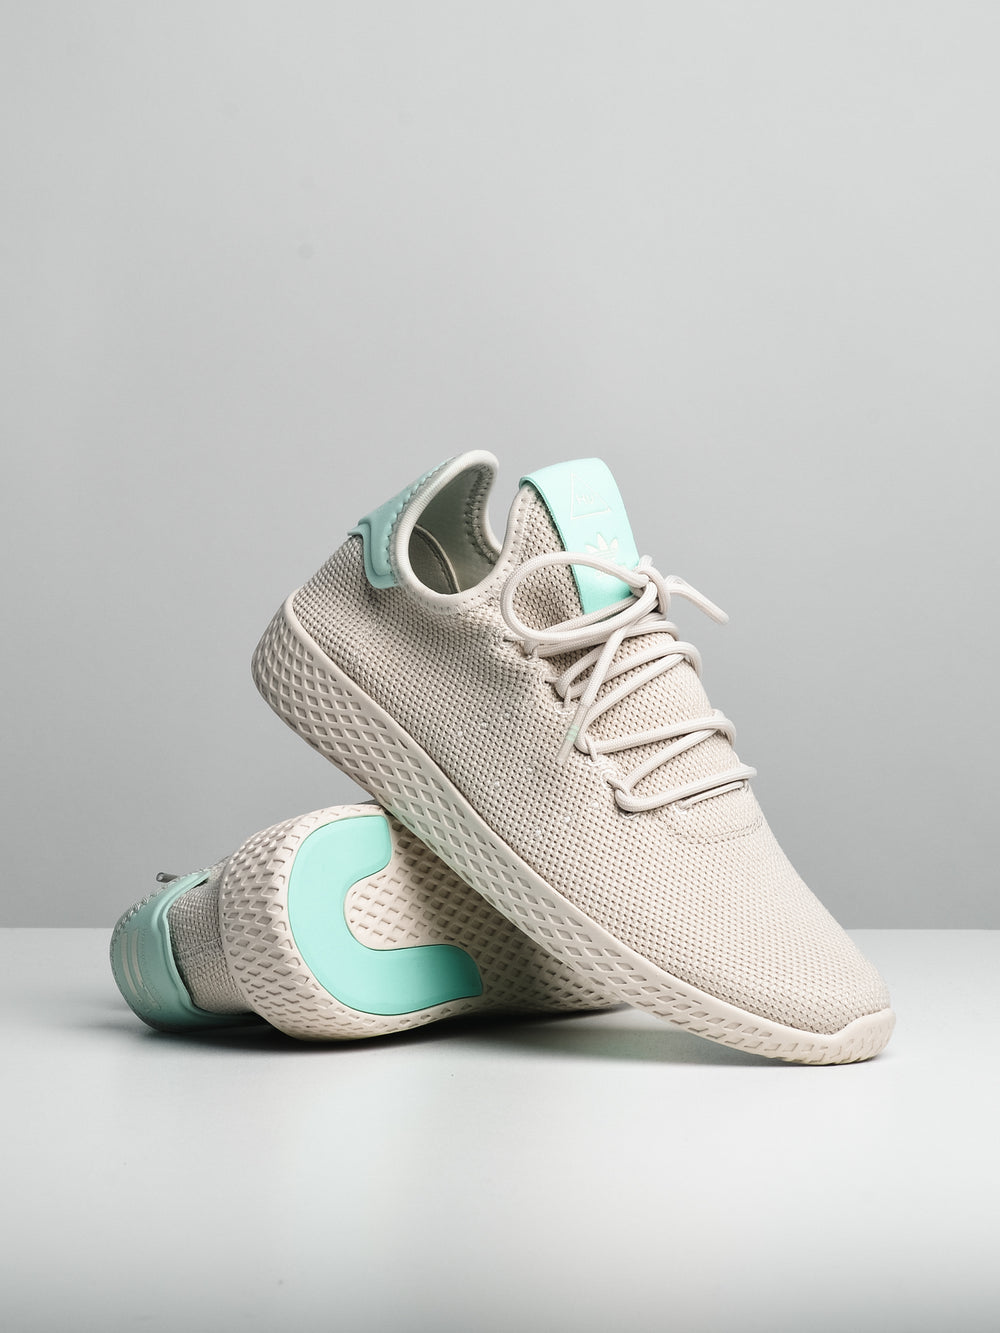 WOMENS PW TENNIS HU W - TALC/CHALK